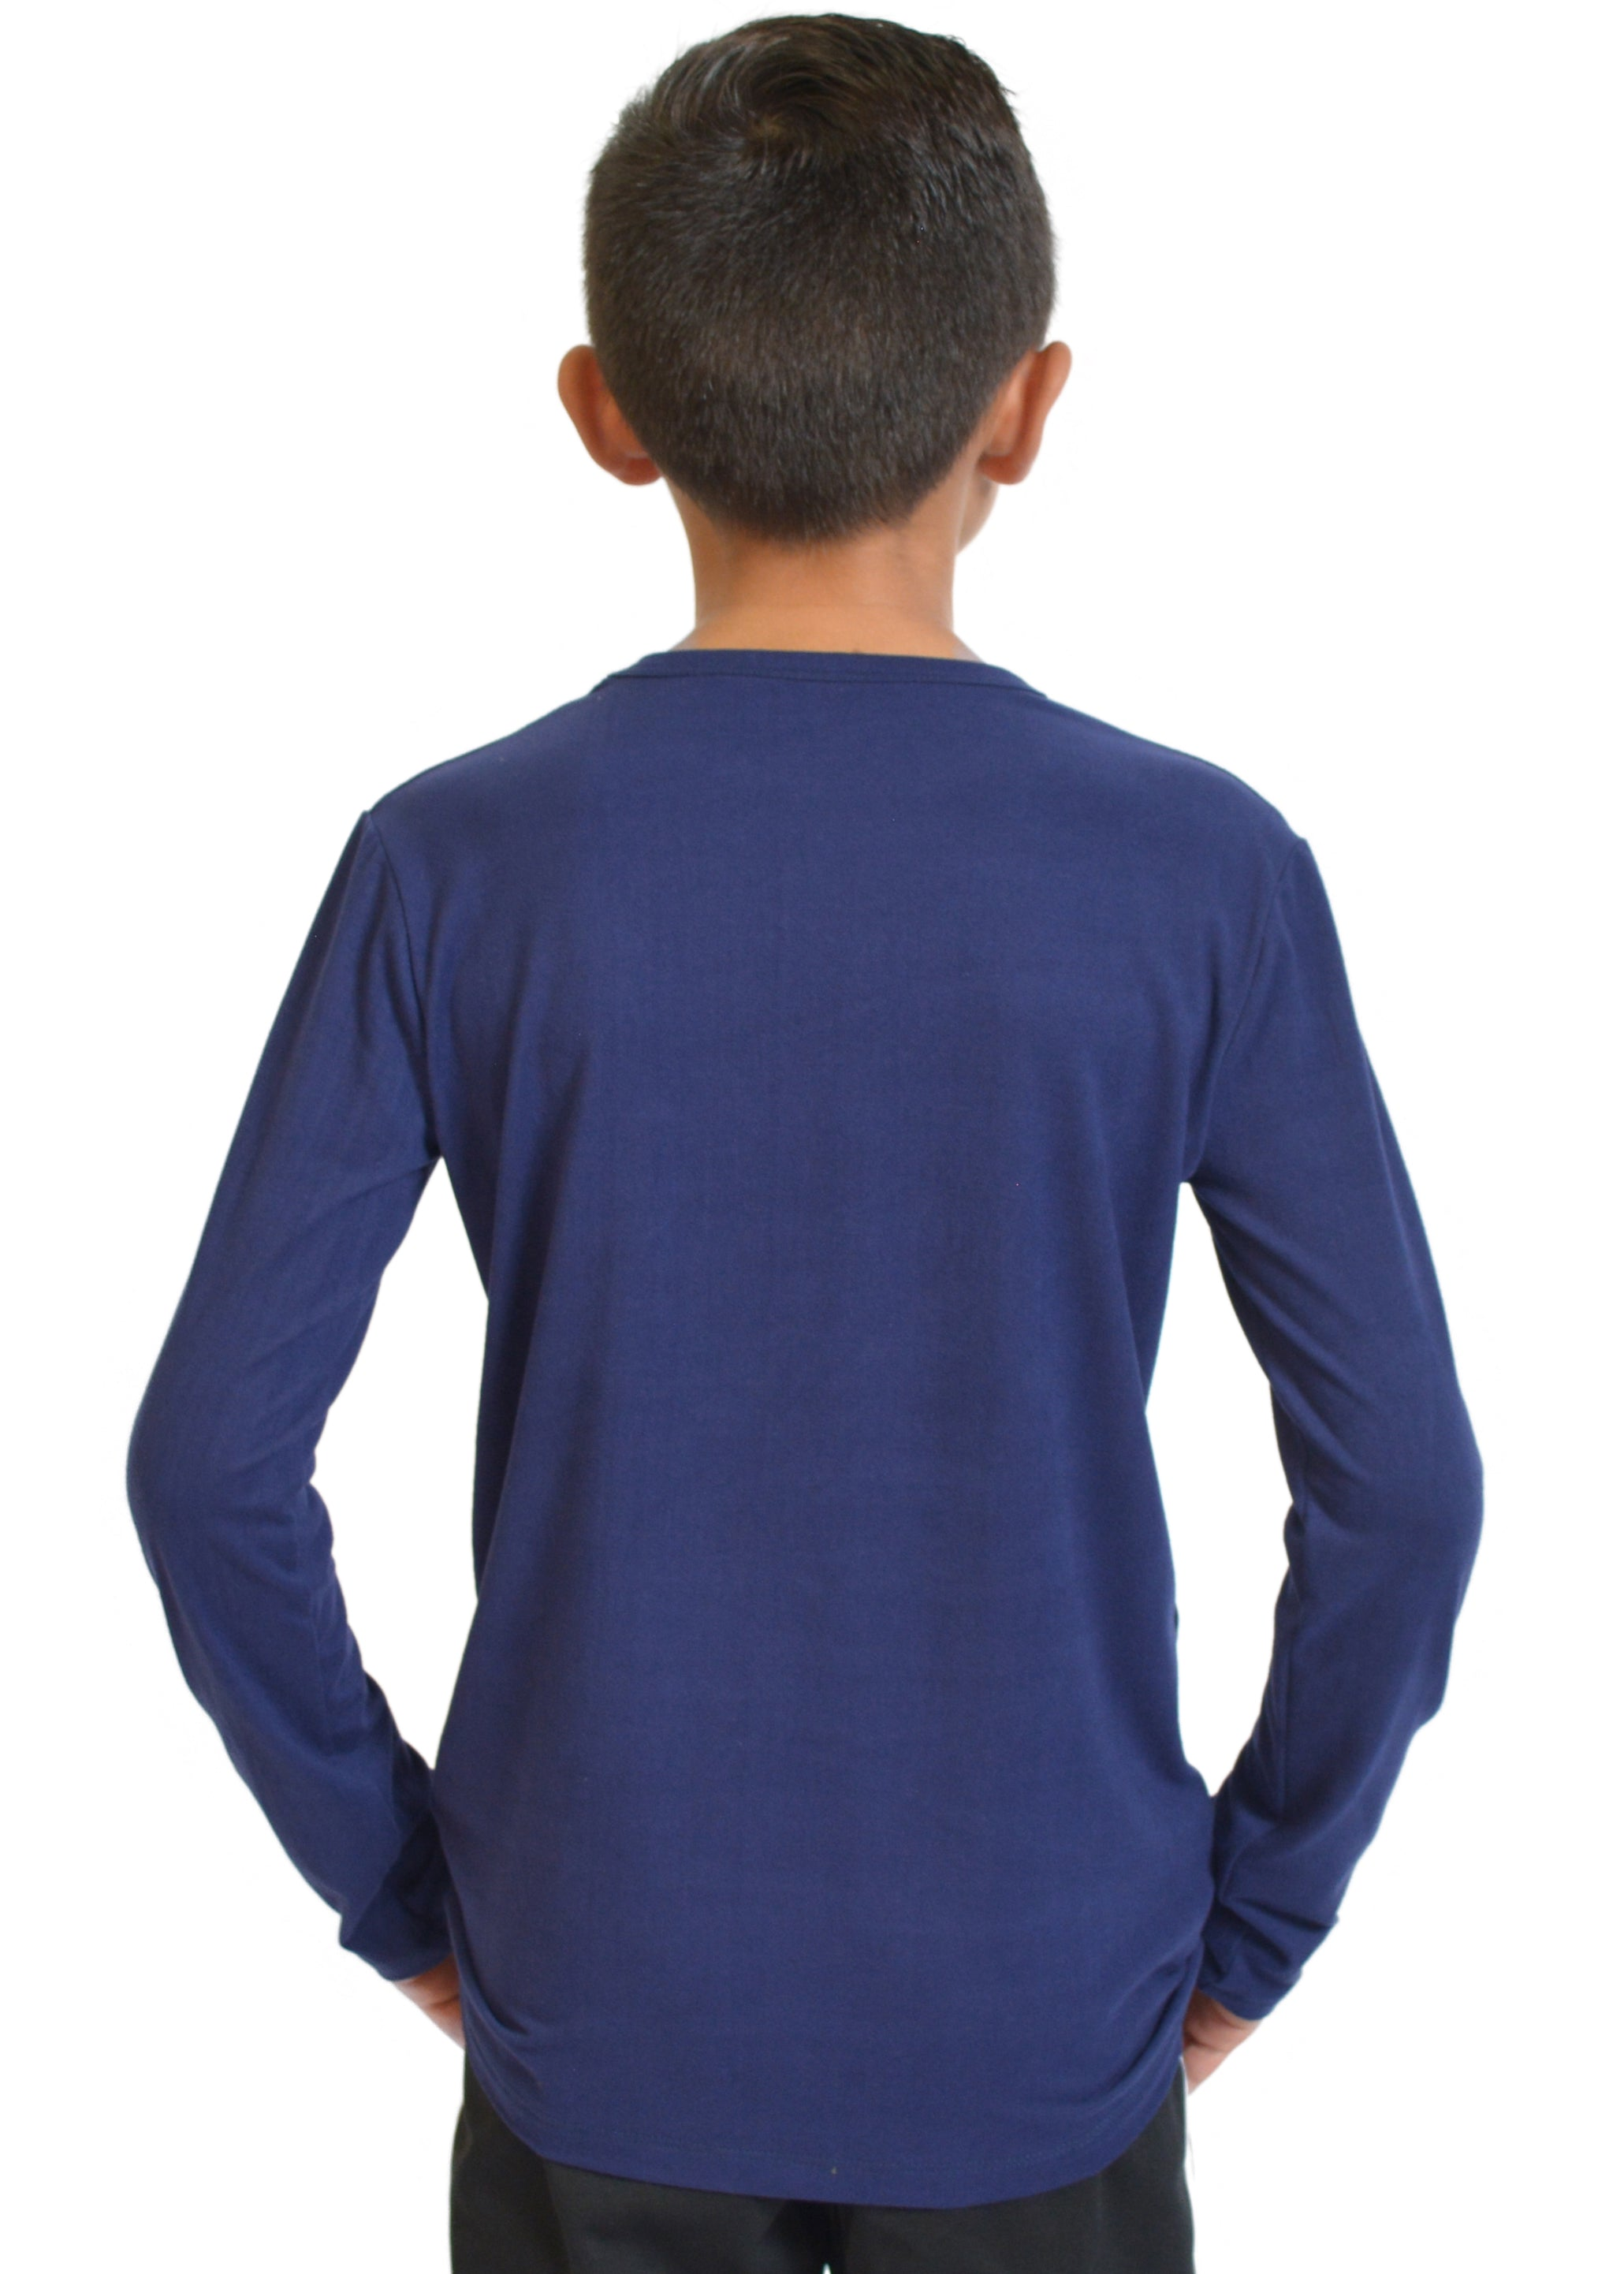 Boy's and Men's Oh So Soft Long Sleeve Top